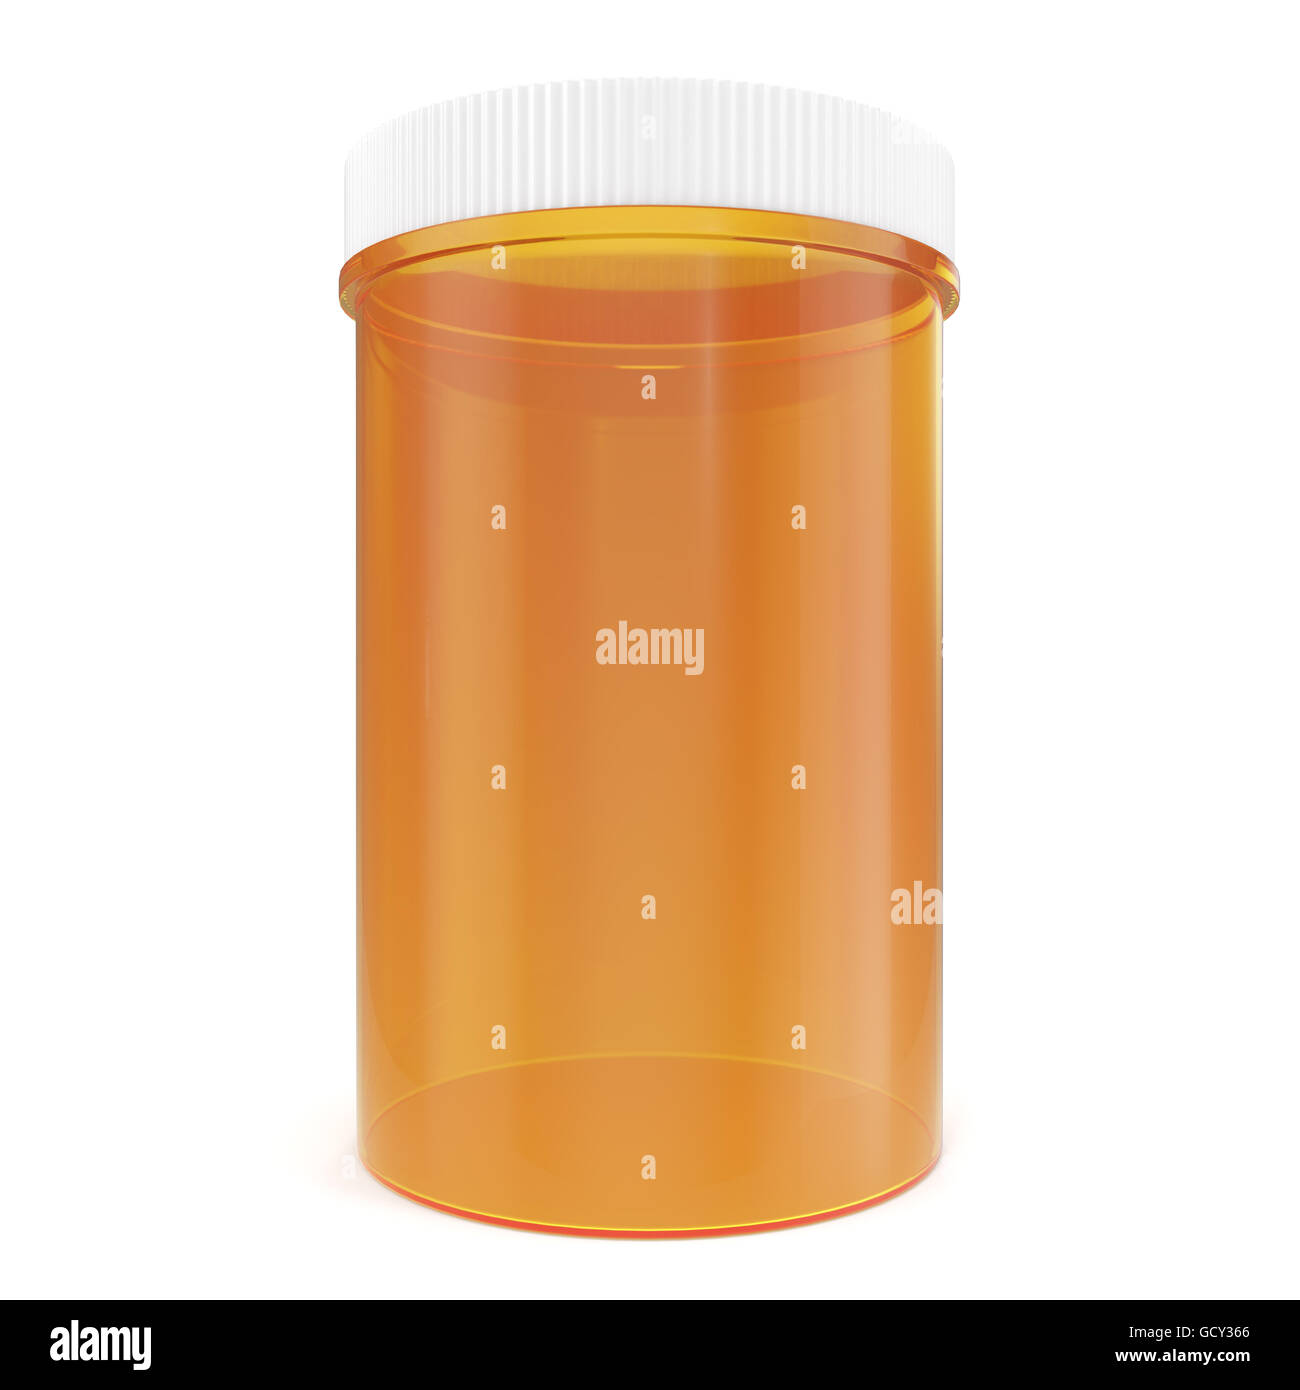 Transparent yellow pillbox unlabeled for medicine isolated on white background. 3d illustration Stock Photo